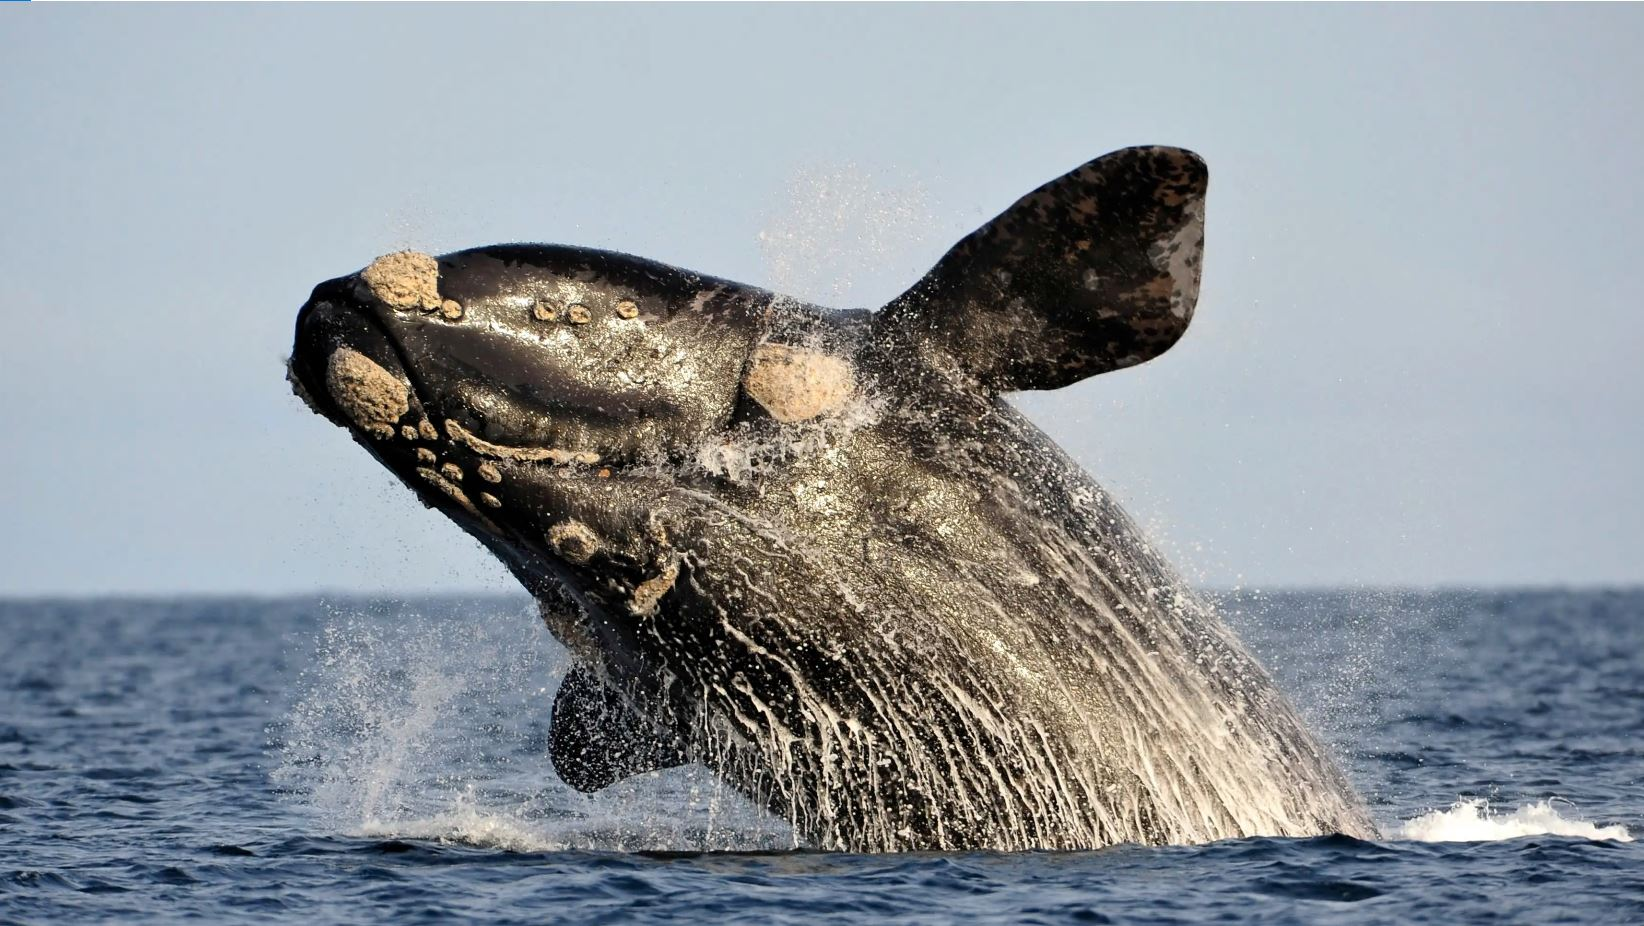 Nikkei Asian Review whales